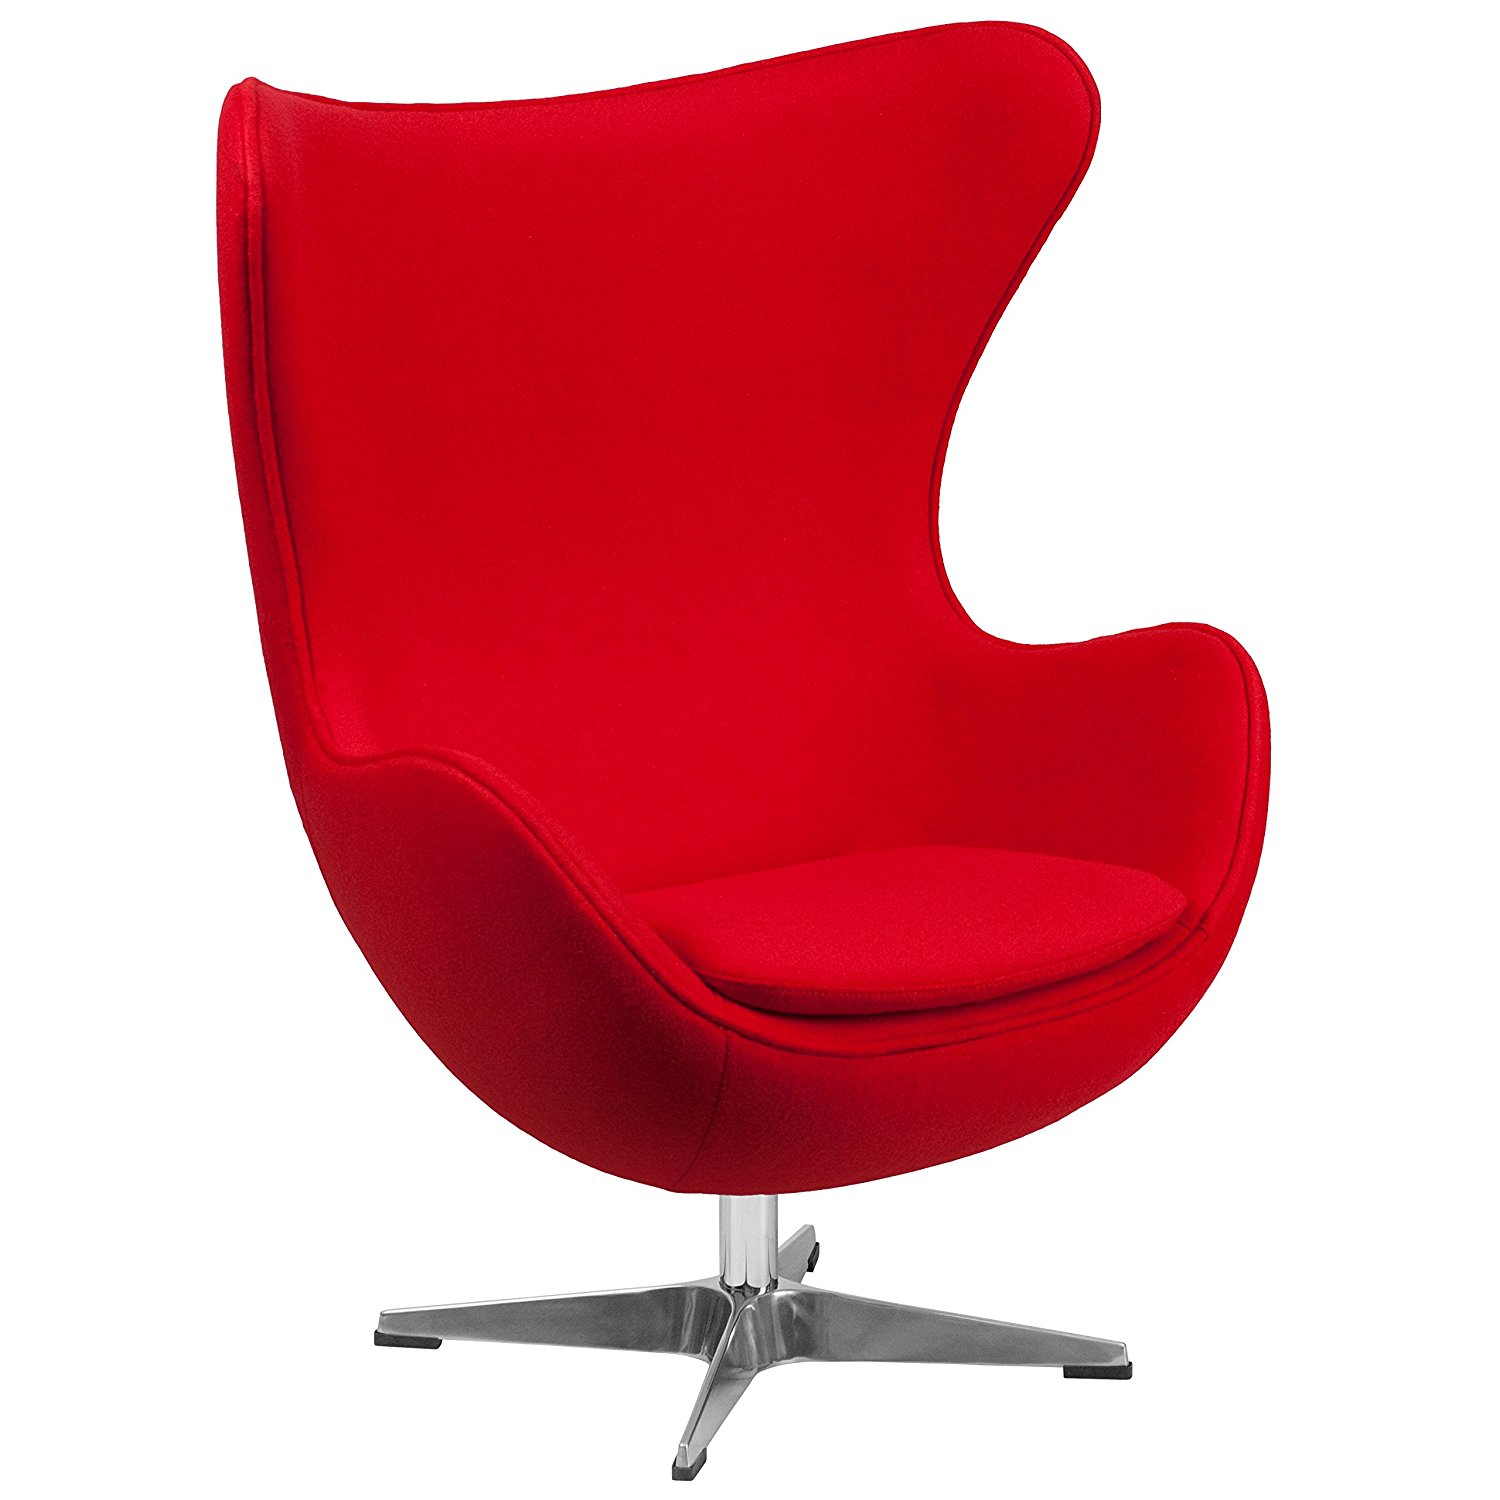 Red Wool Fabric Egg Chair with Tilt-Lock Mechanism - Egg Chair